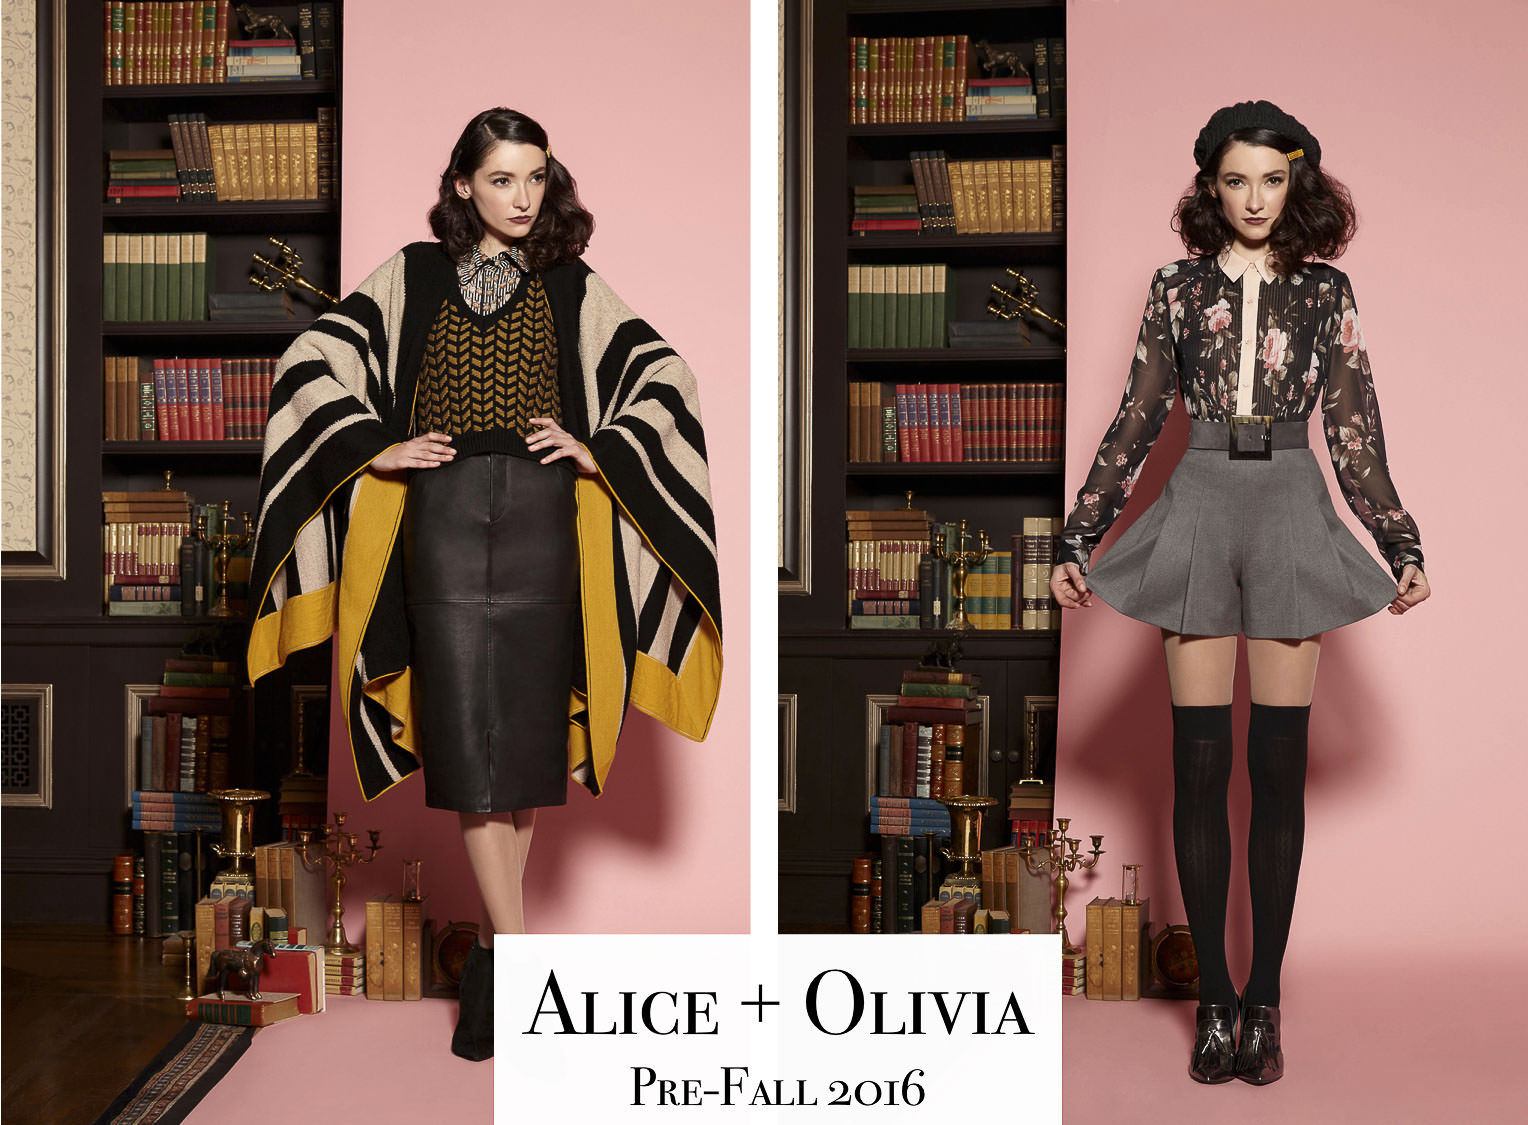 alice+olivia-pre-fall-2016_top-high-fashion-blogs-2016-3